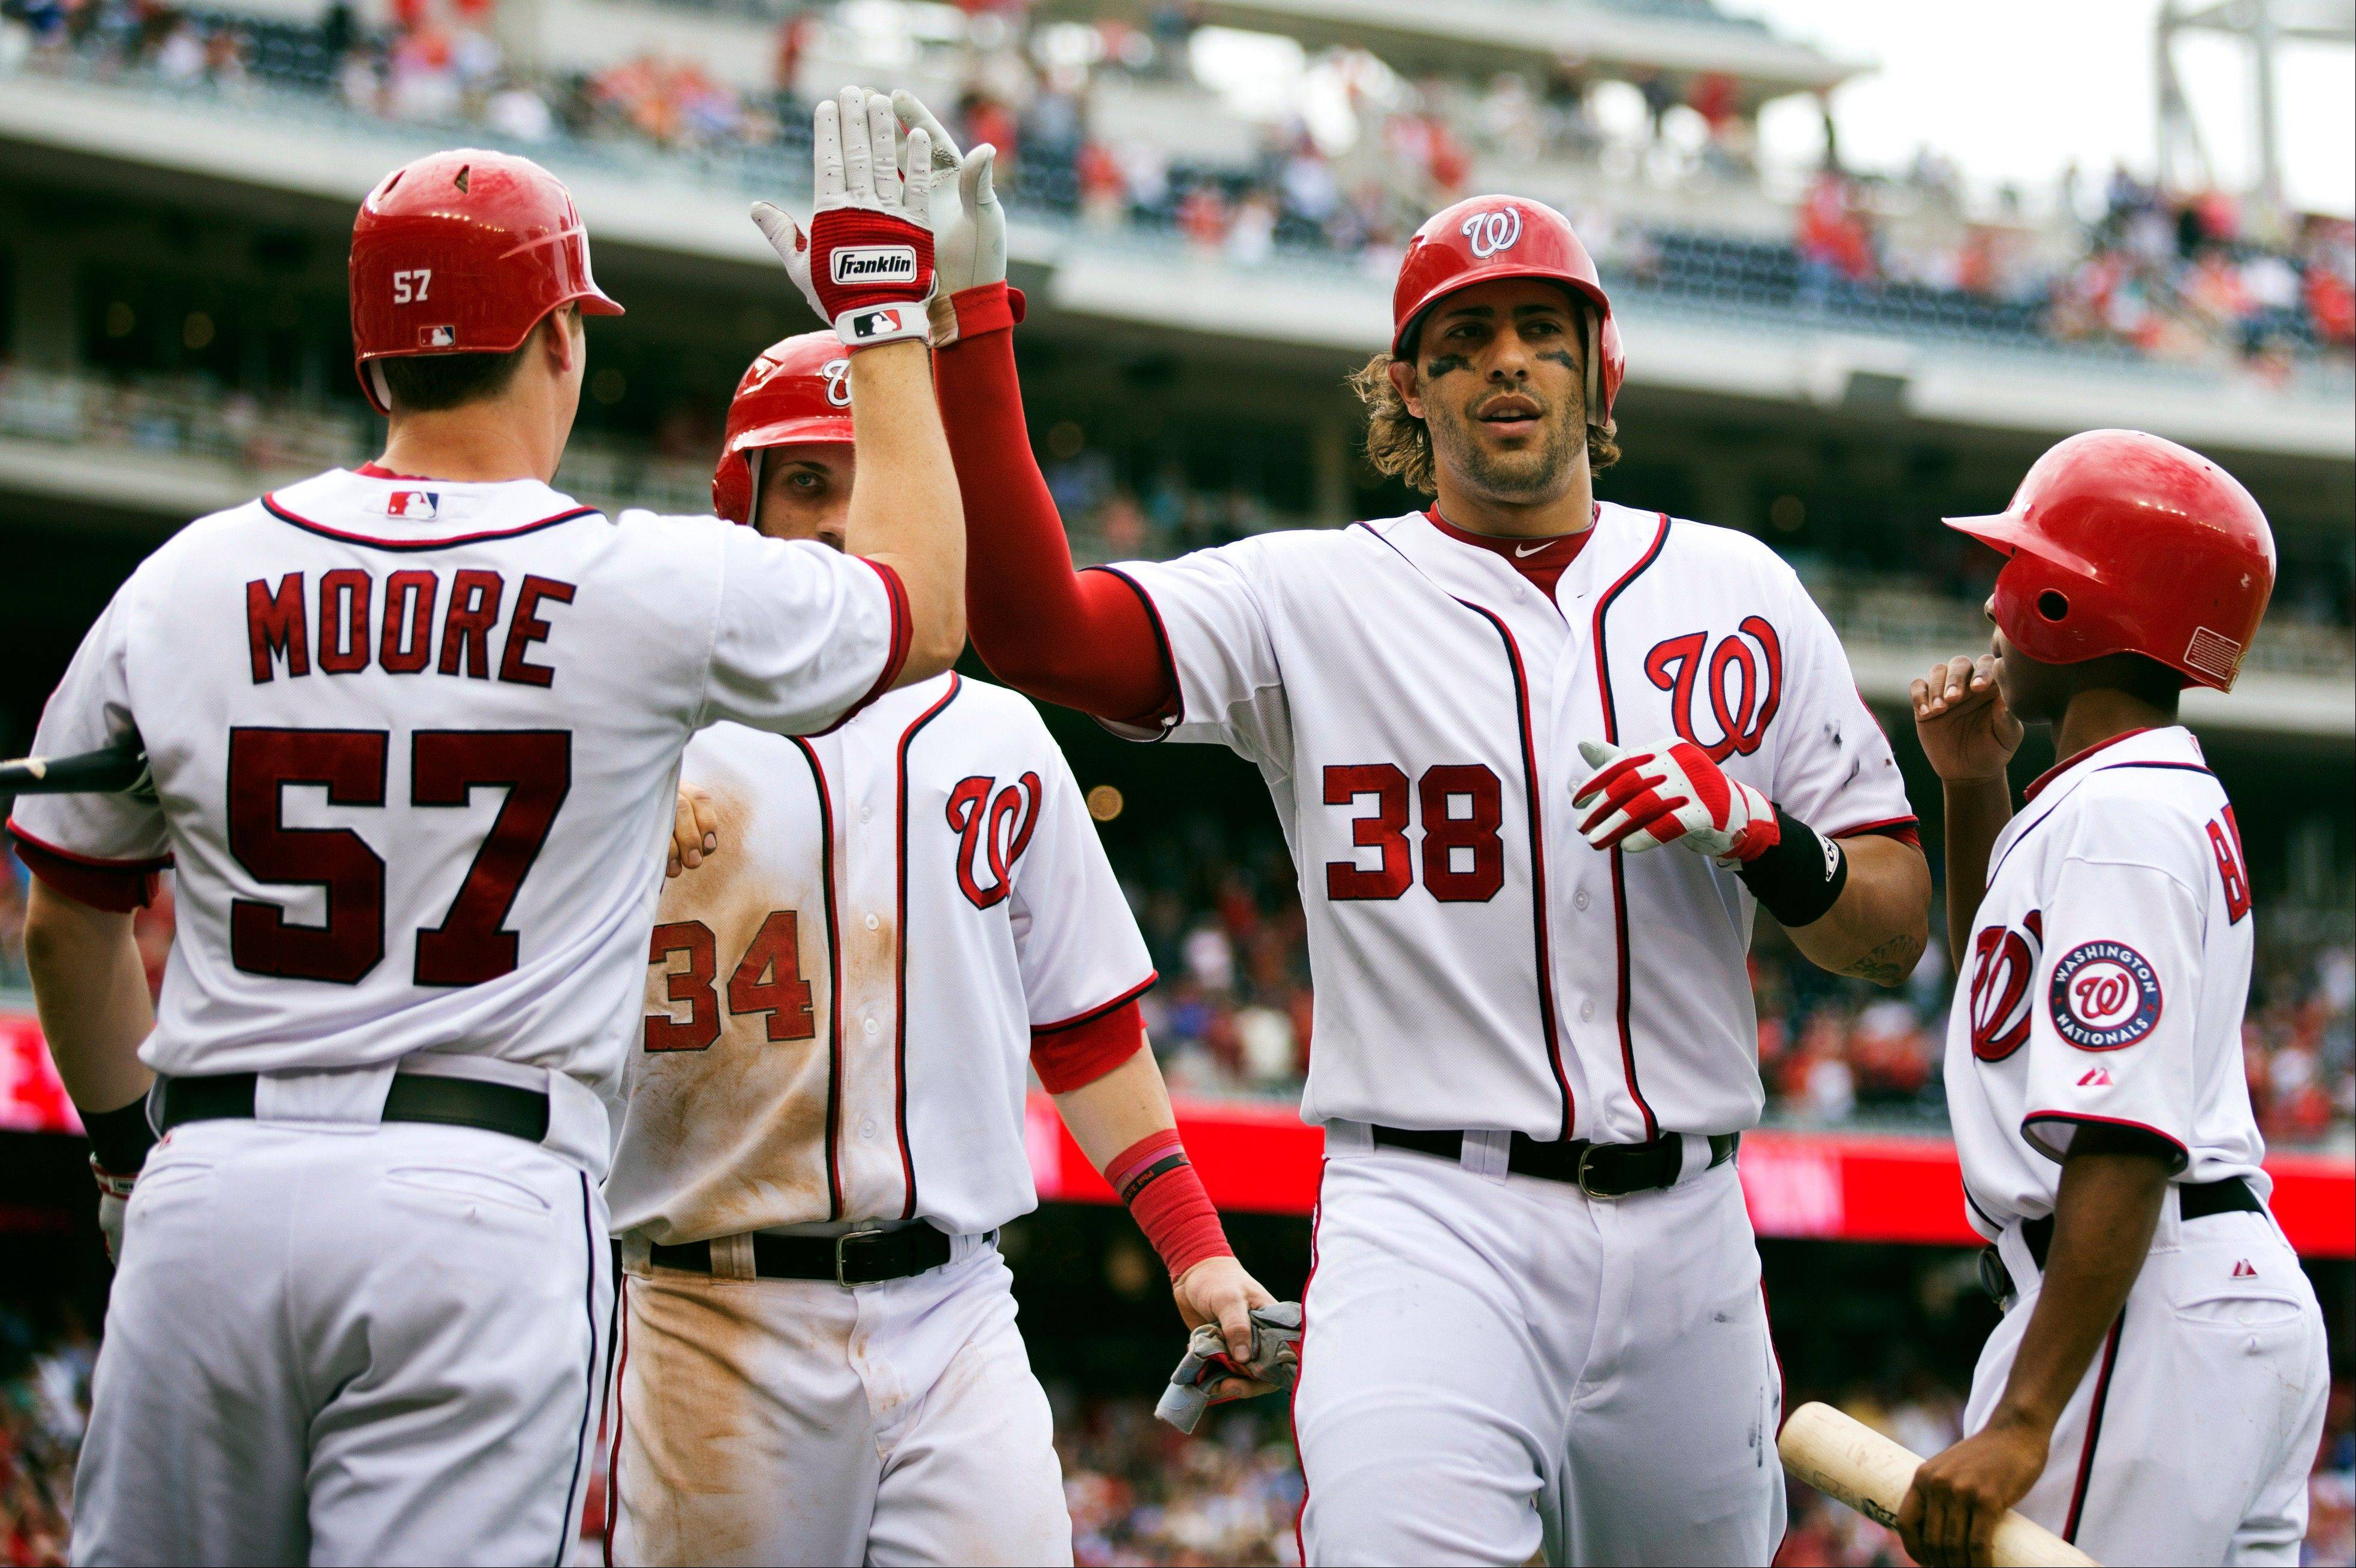 Washington's Michael Morse (38) is congratulated by Tyler Moore (57) after hitting a home run during the eighth inning Wednesday at home against Philadelphia.